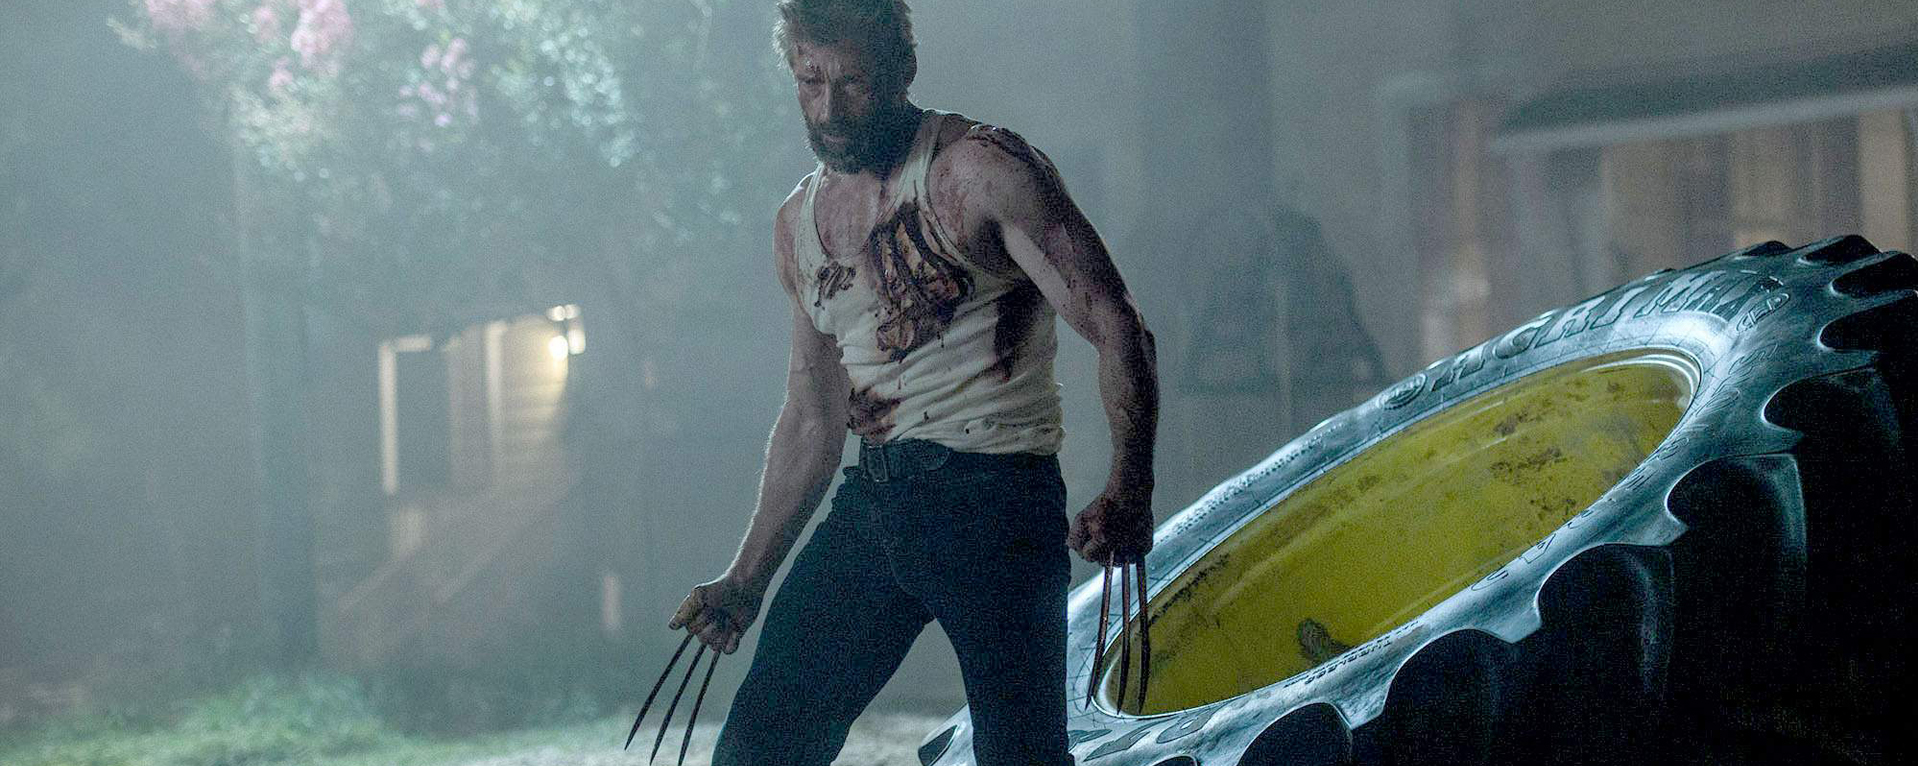 Hugh Jackman as Wolverine, one last time in  Logan . He looks tired.